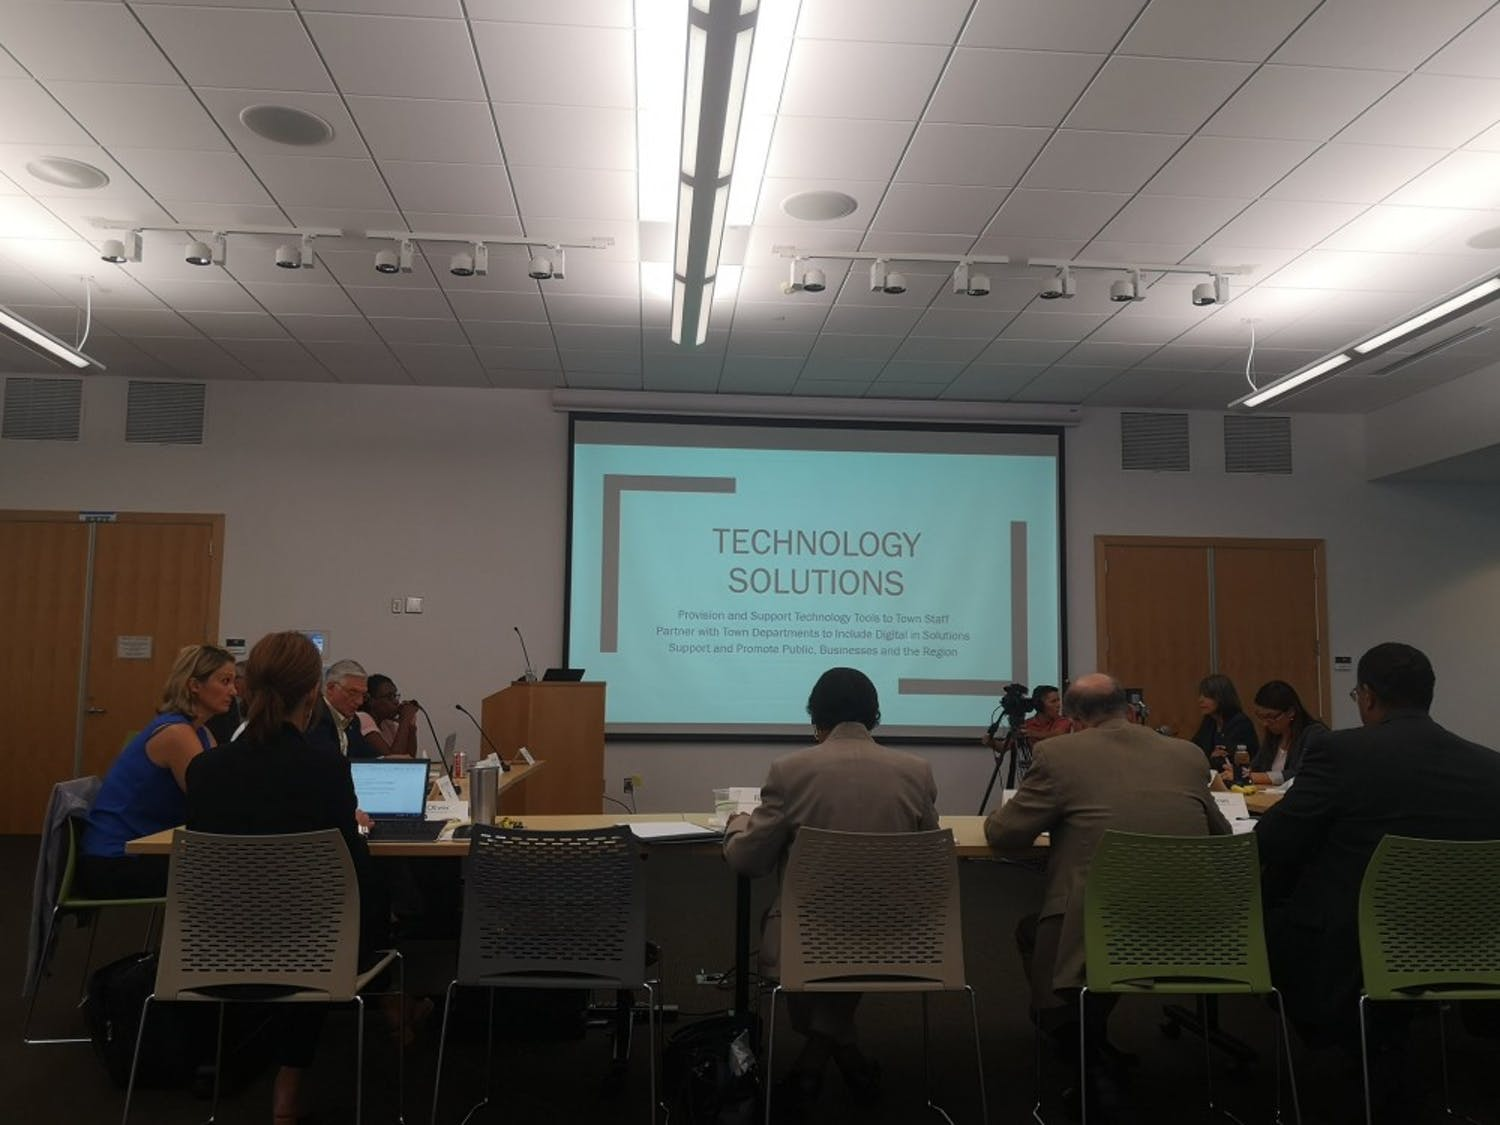 The Chapel Hill Town Council looks at the overview of technology use in areas like security, construction and digital transformation. The council met for a work session on Wednesday, Sept. 18, 2019.